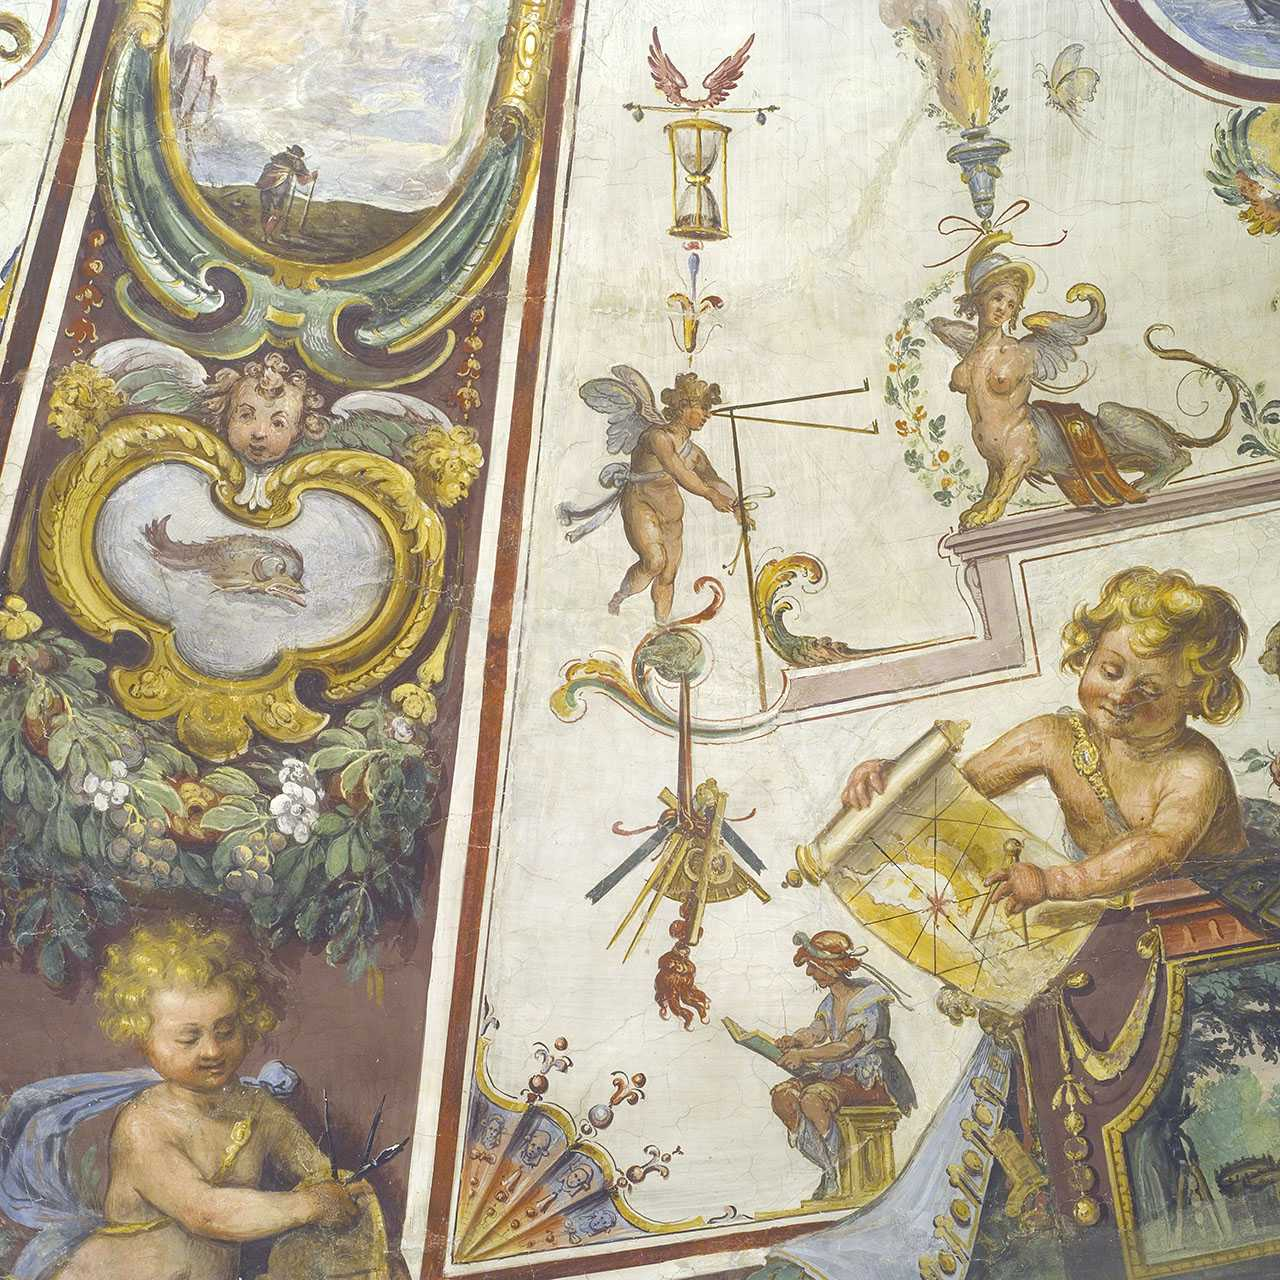 Detail of the ceiling of the Stanzino delle Matematiche by Giulio Parigi, Uffizi Gallery, Florence